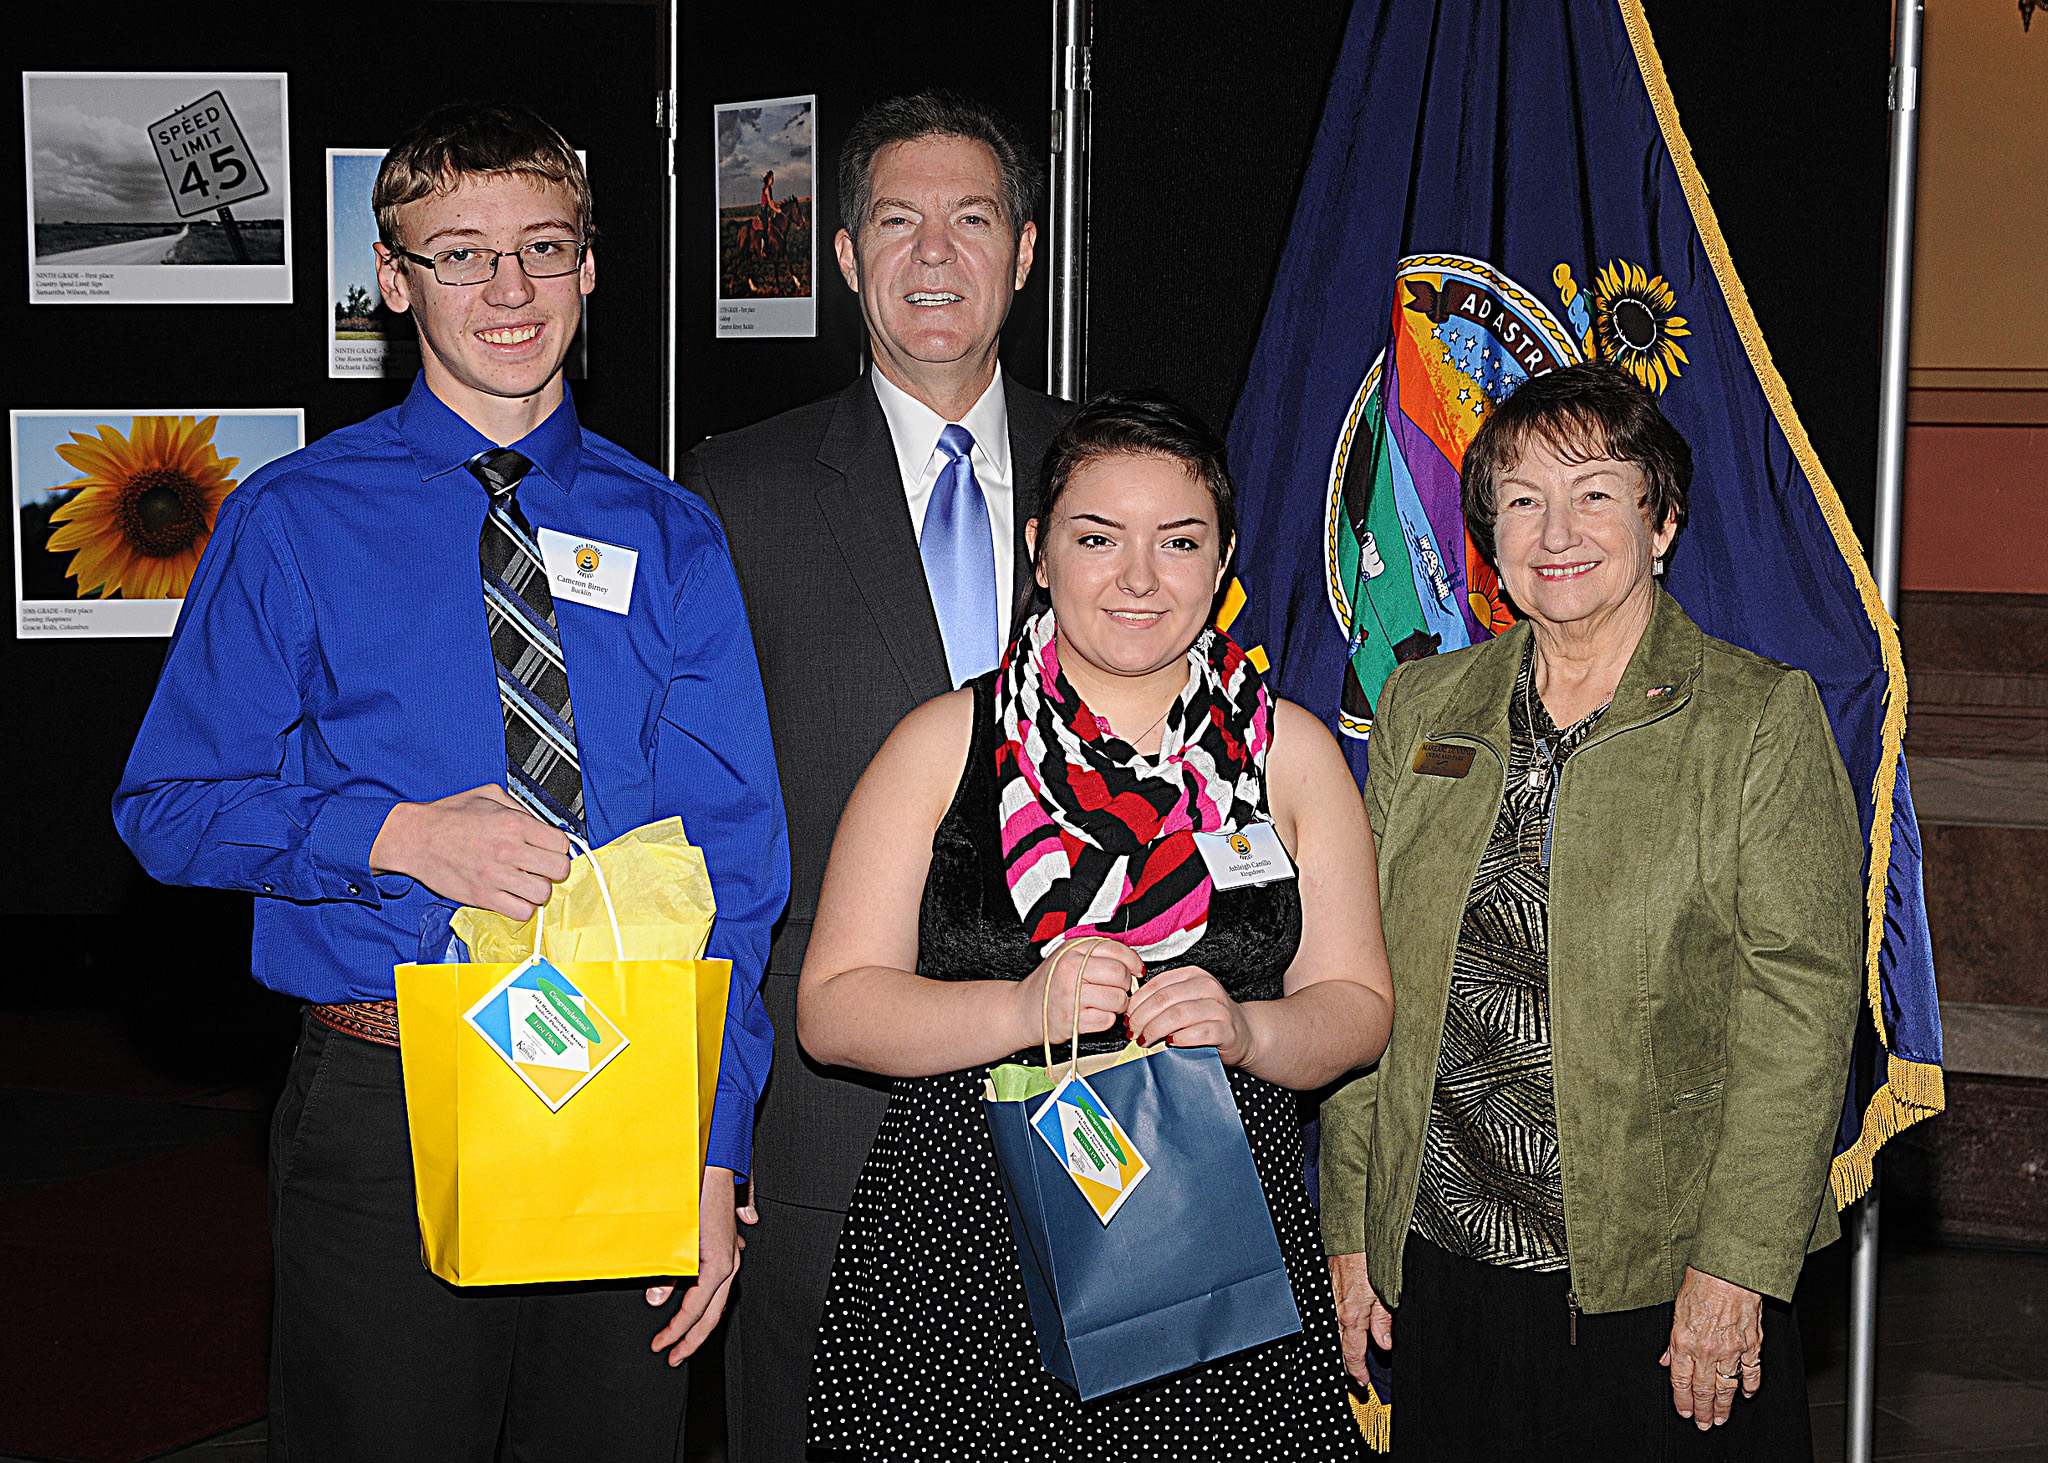 11th grade winners Cameron Birney and Ashleigh Carrillo with Governor Sam Brownback and Marearl Denning